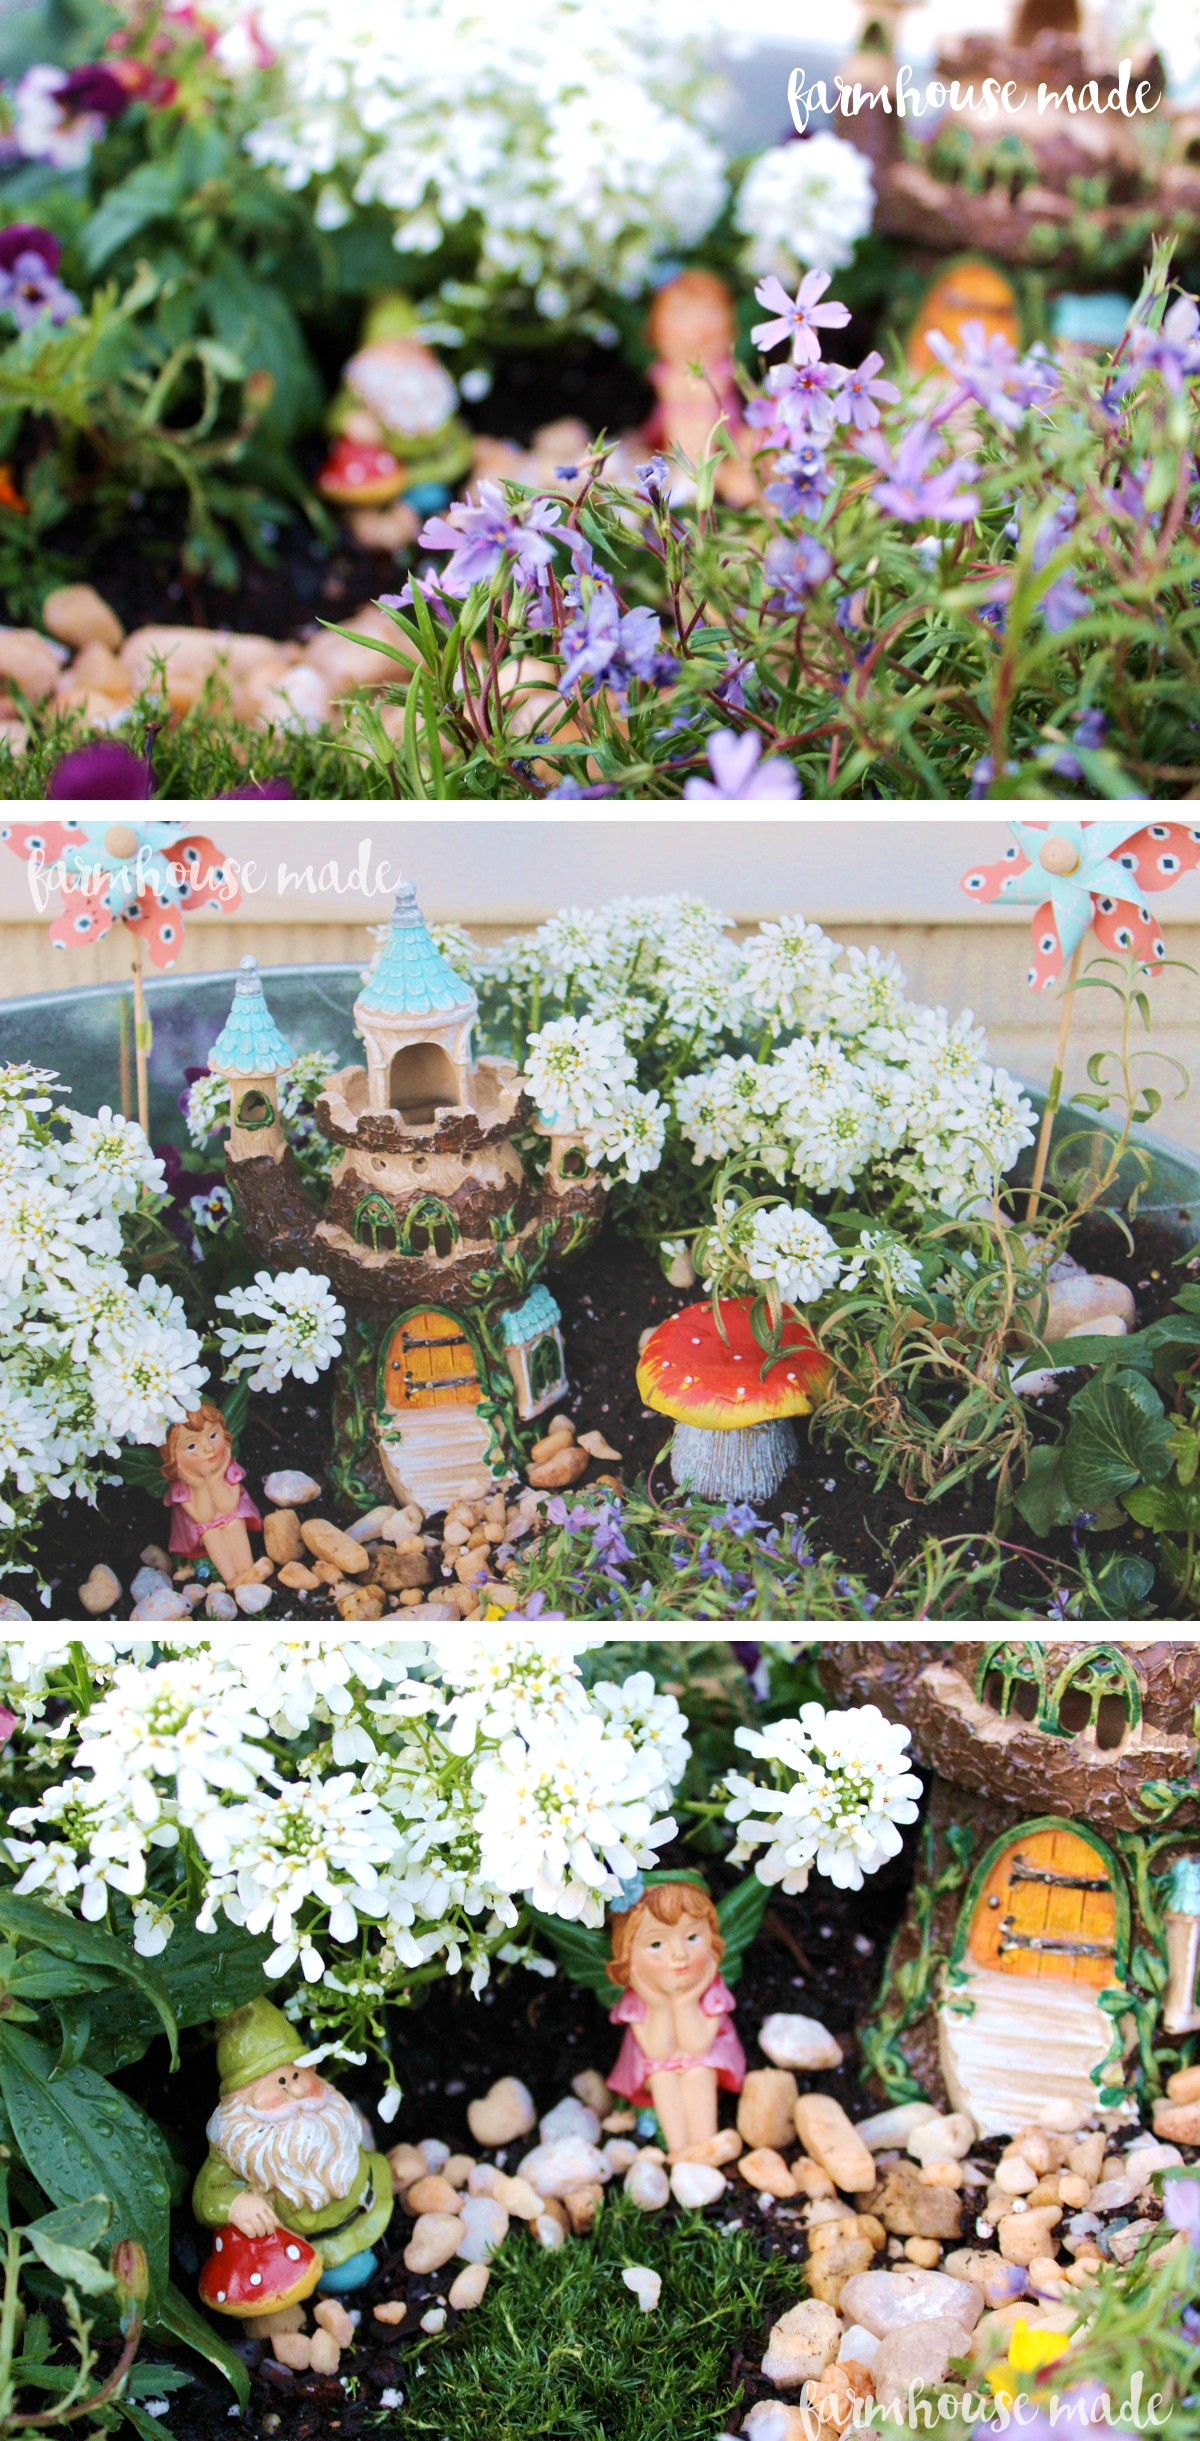 Impressive How To Make Your Own Fairy Building A Fairy Garden Farmhouse Made Make Your Own Garden Soil Mixture Make Your Own Garden Flag Photo garden Make Your Own Garden